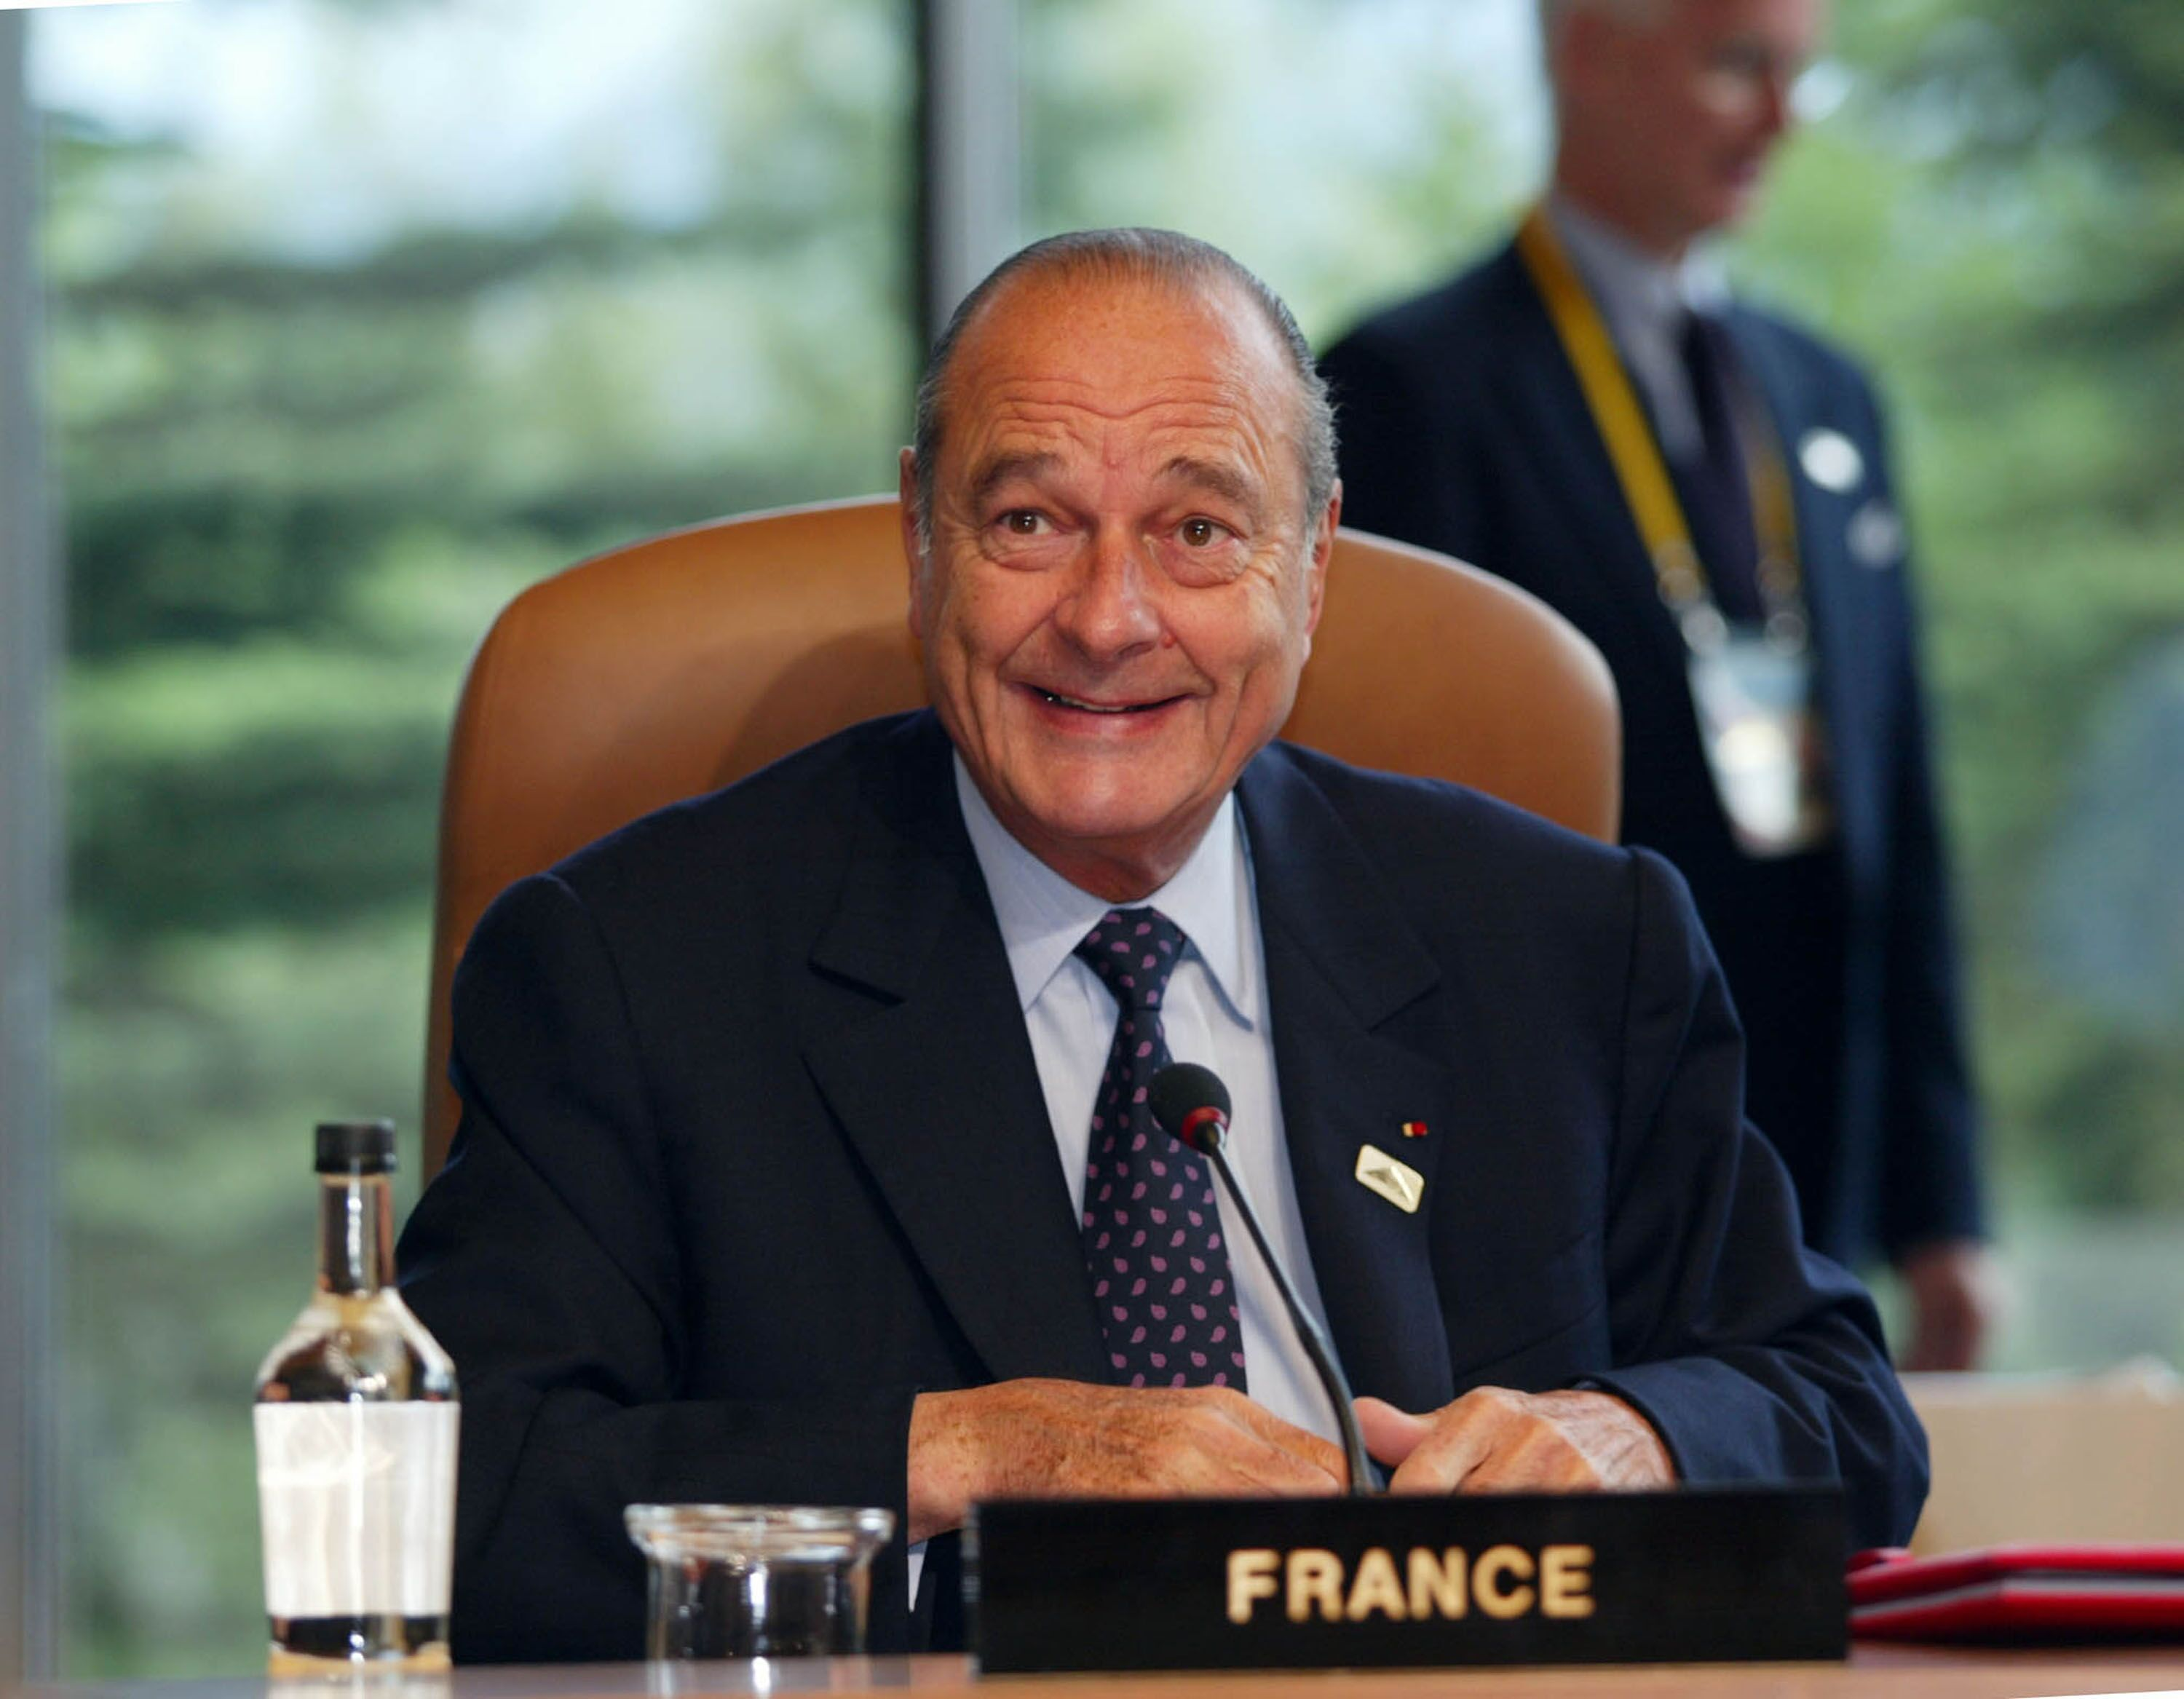 Jacques Chirac assiste au sommet du G8 le 27 juin 2002 à Kananaskis, Canada. | Photo : Getty Images